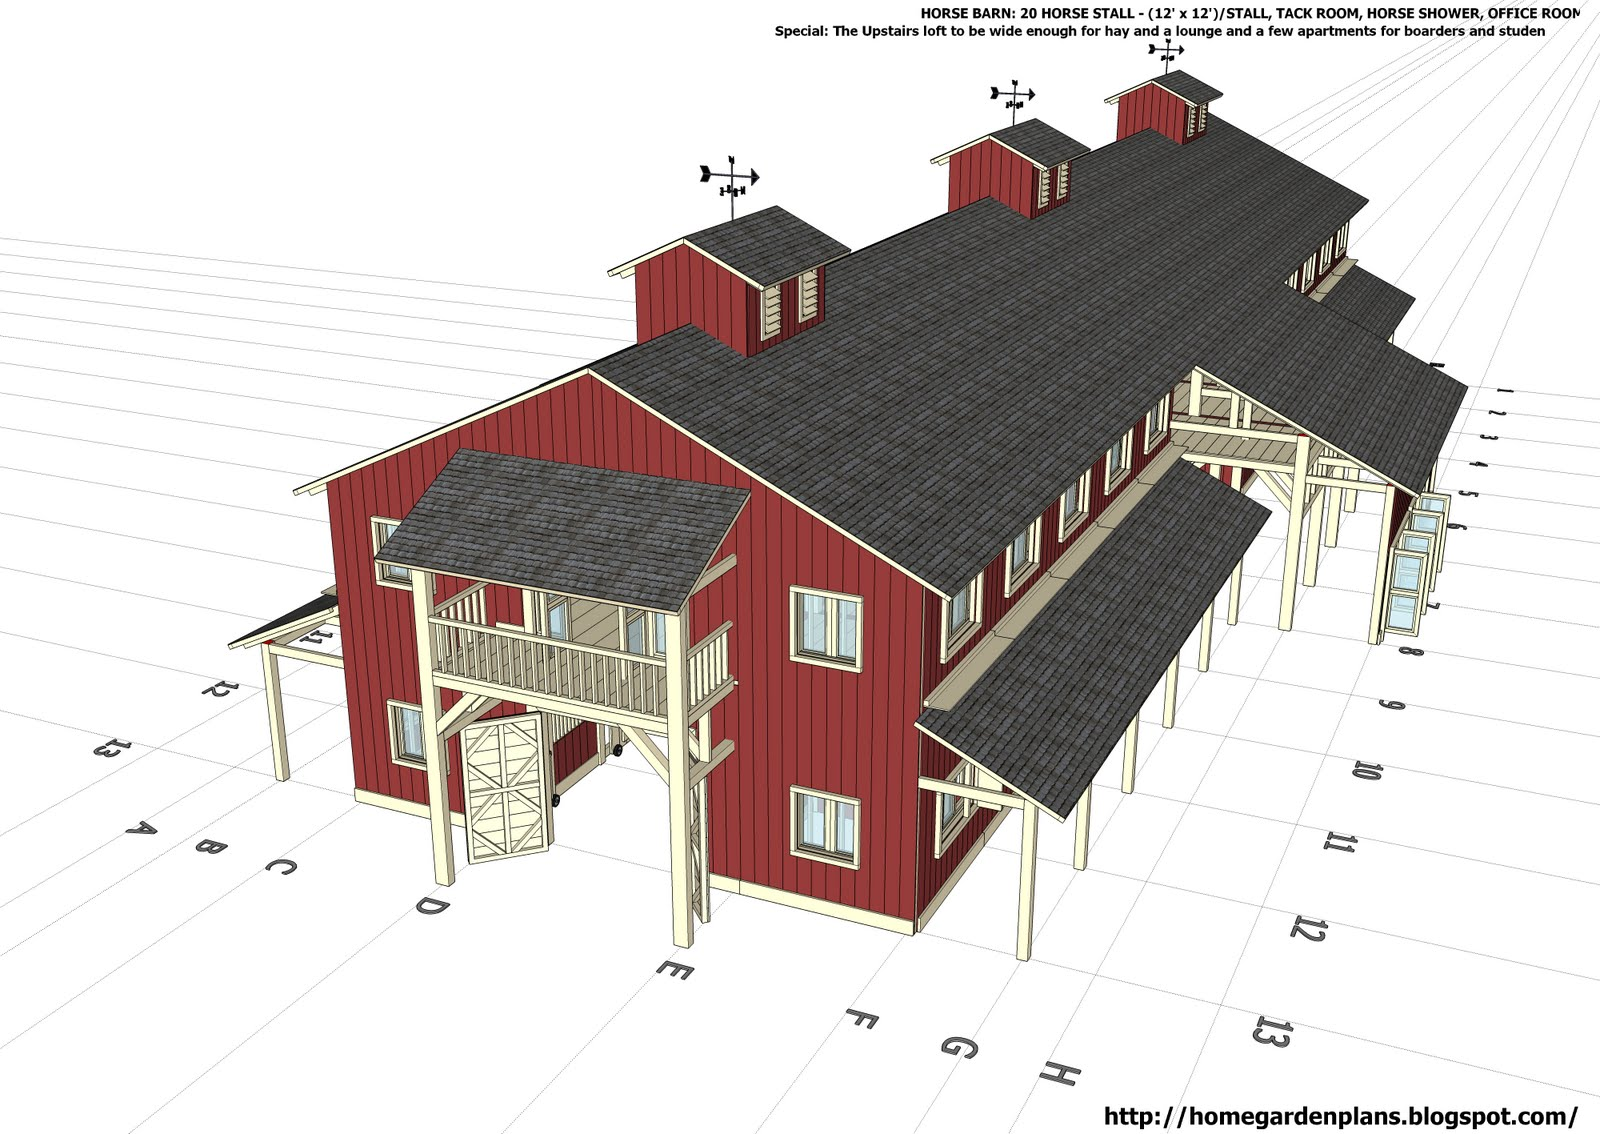 Home garden plans horse barns for Equestrian barn plans